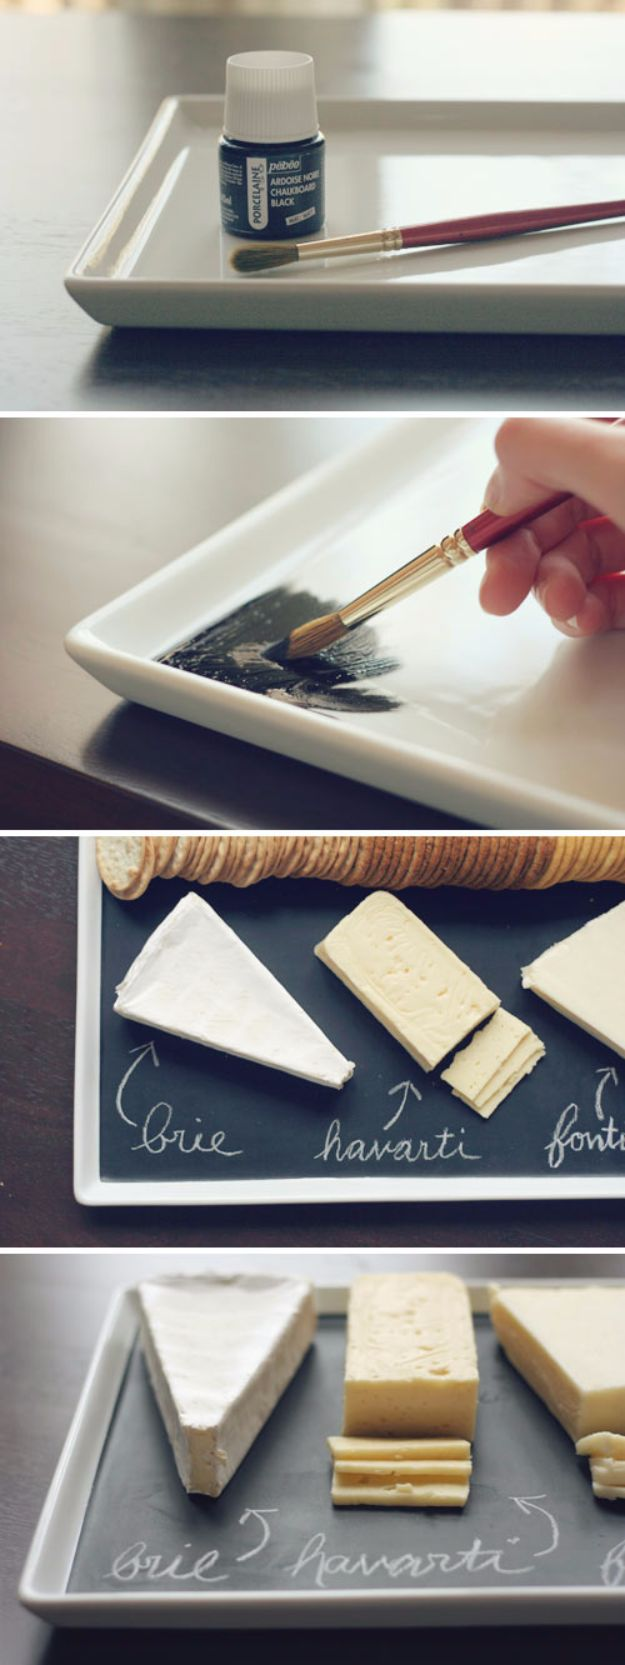 DIY Chalkboard Paint Ideas for Furniture Projects, Home Decor, Kitchen, Bedroom, Signs and Crafts for Teens. | Chalkboard Serving Platter | http://diyjoy.com/diy-chalkboard-paint-ideas